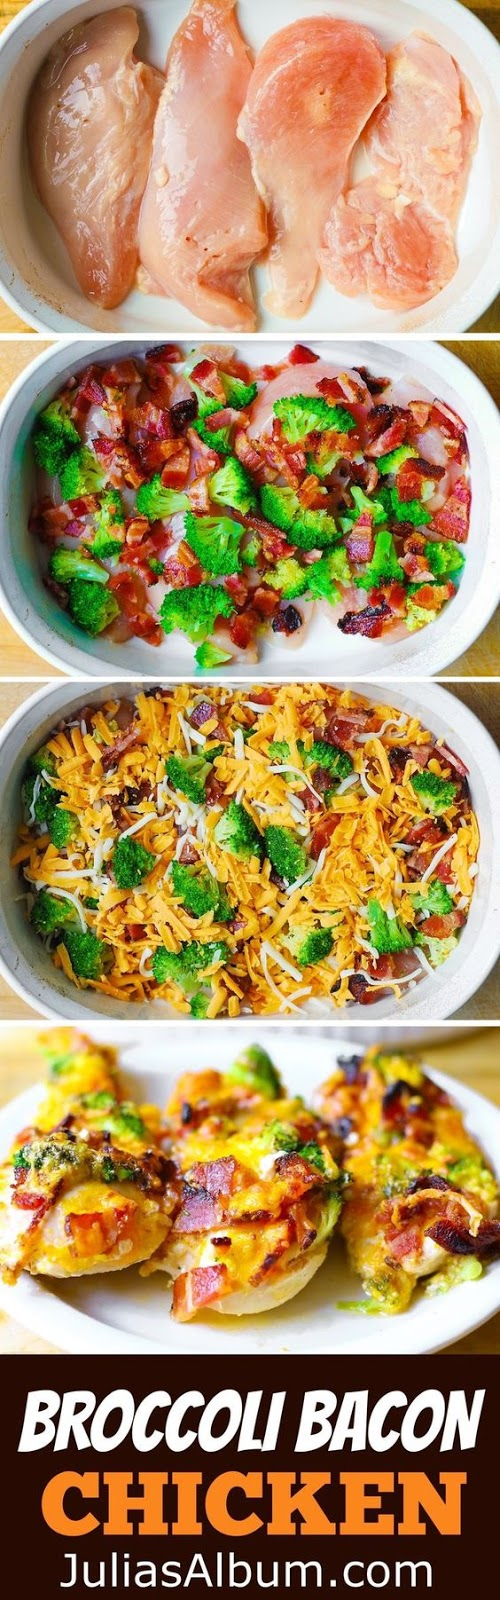 Broccoli Bacon Cheddar Chicken Breasts baked in a casserole dish. Gluten free recipe